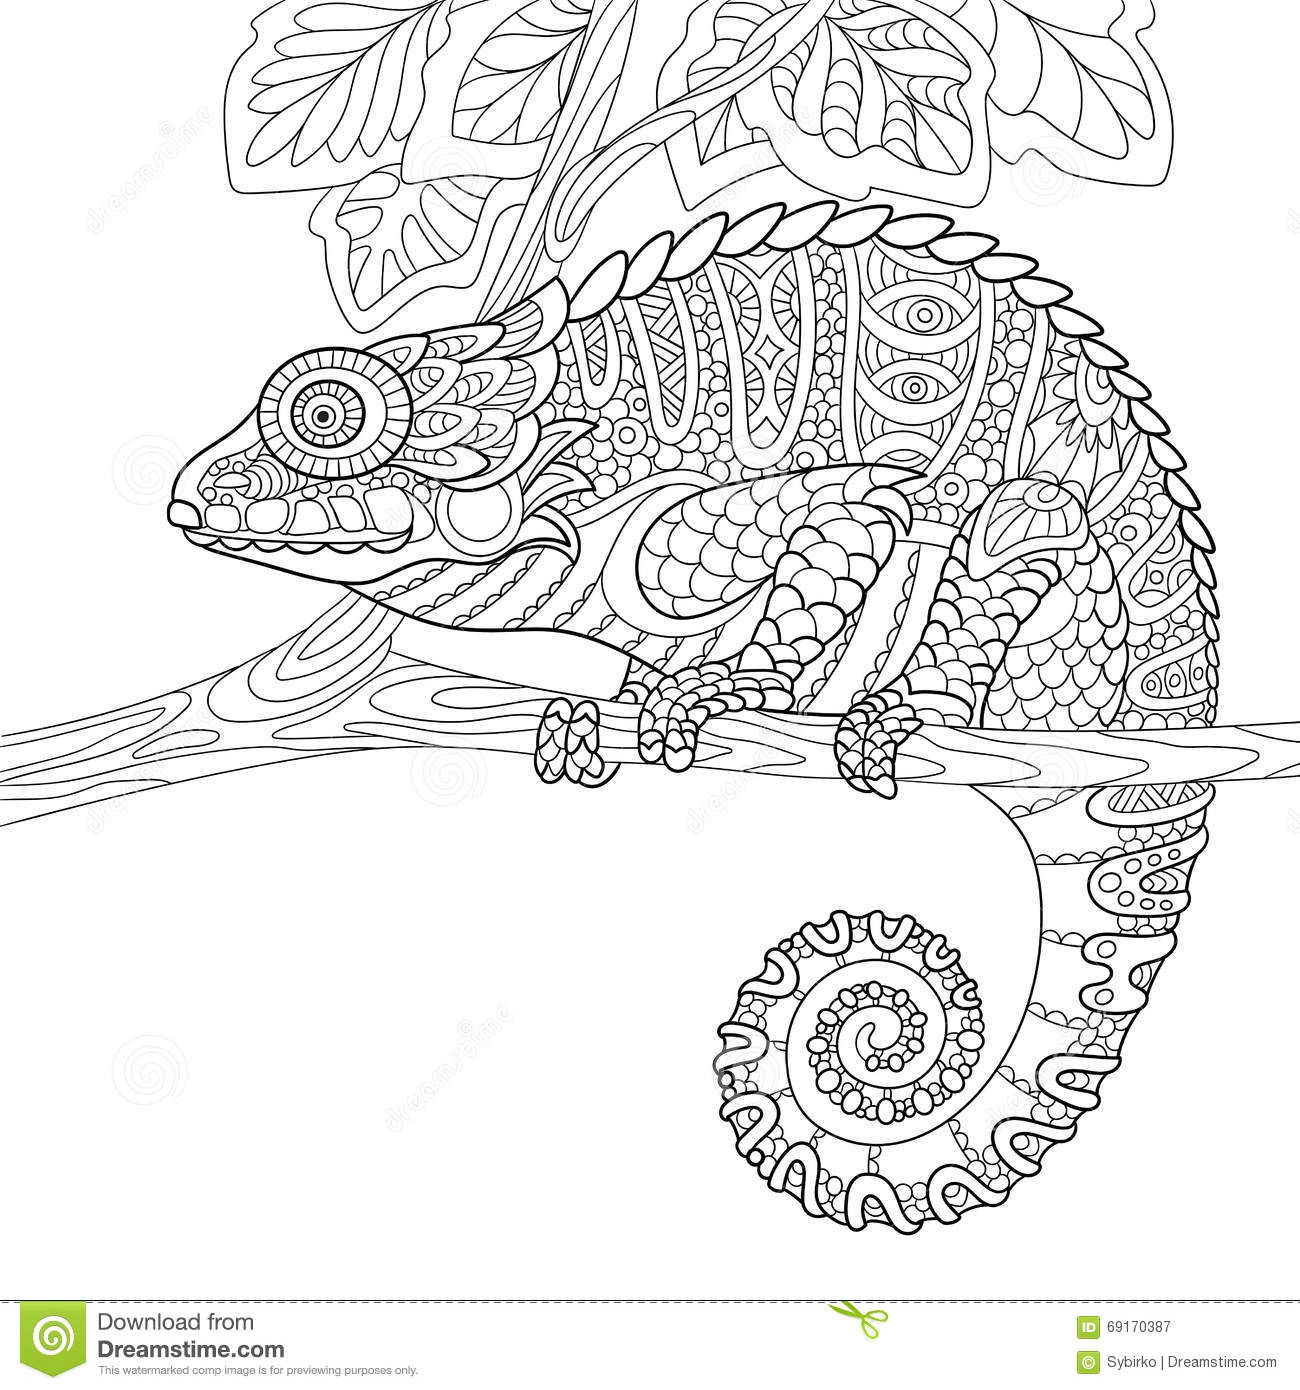 coloring pages for adults chameleon the chameleon coloring page super detailed by pages coloring adults chameleon for